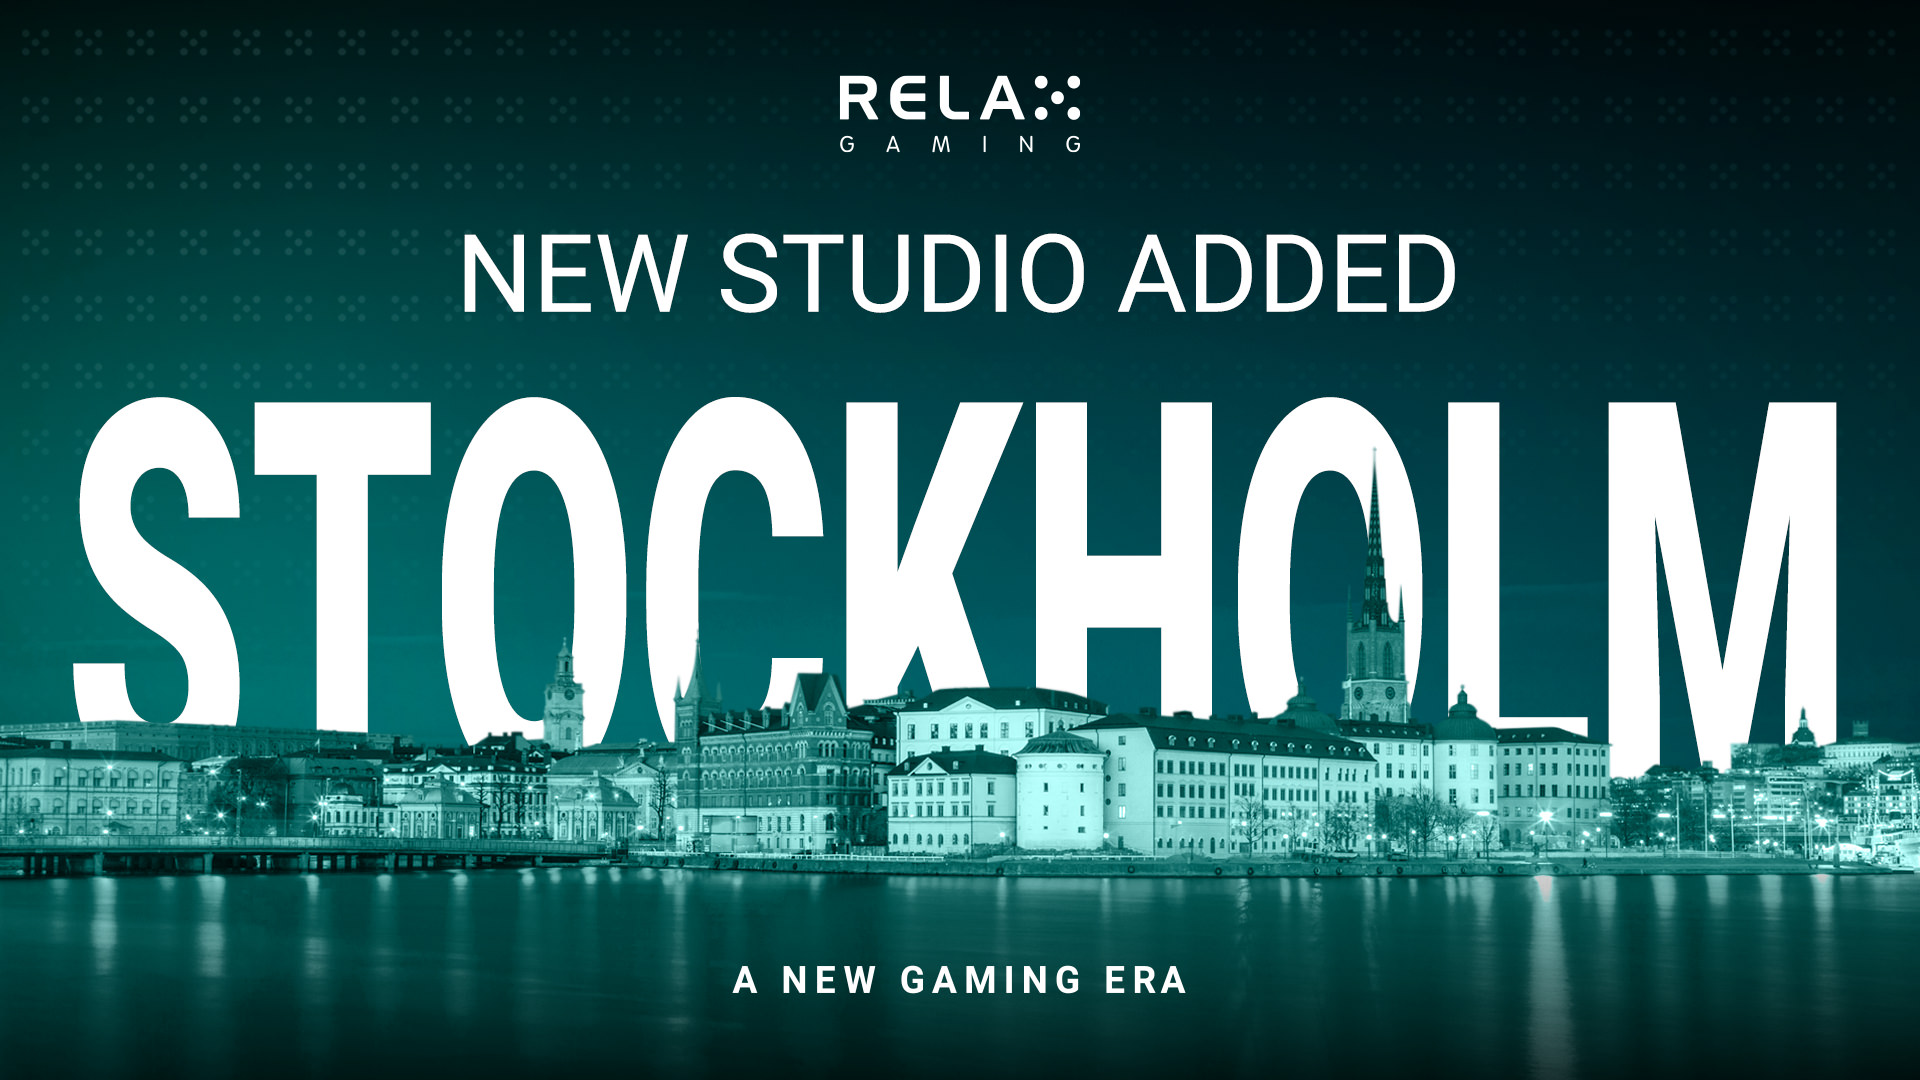 Relax hires new in-house Stockholm studio